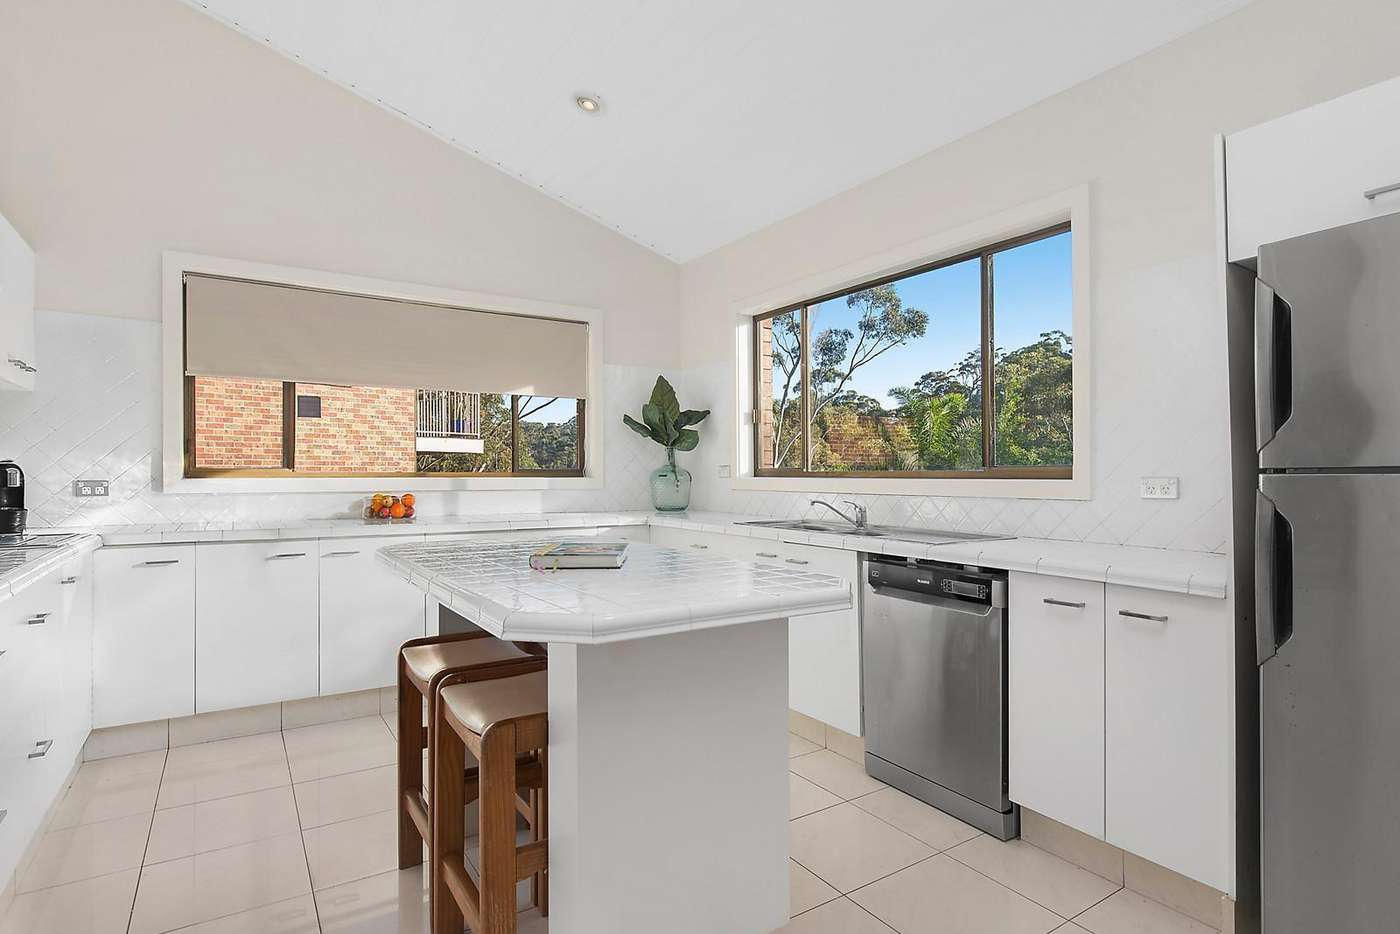 Sixth view of Homely house listing, 26 Valley Way, Gymea Bay NSW 2227